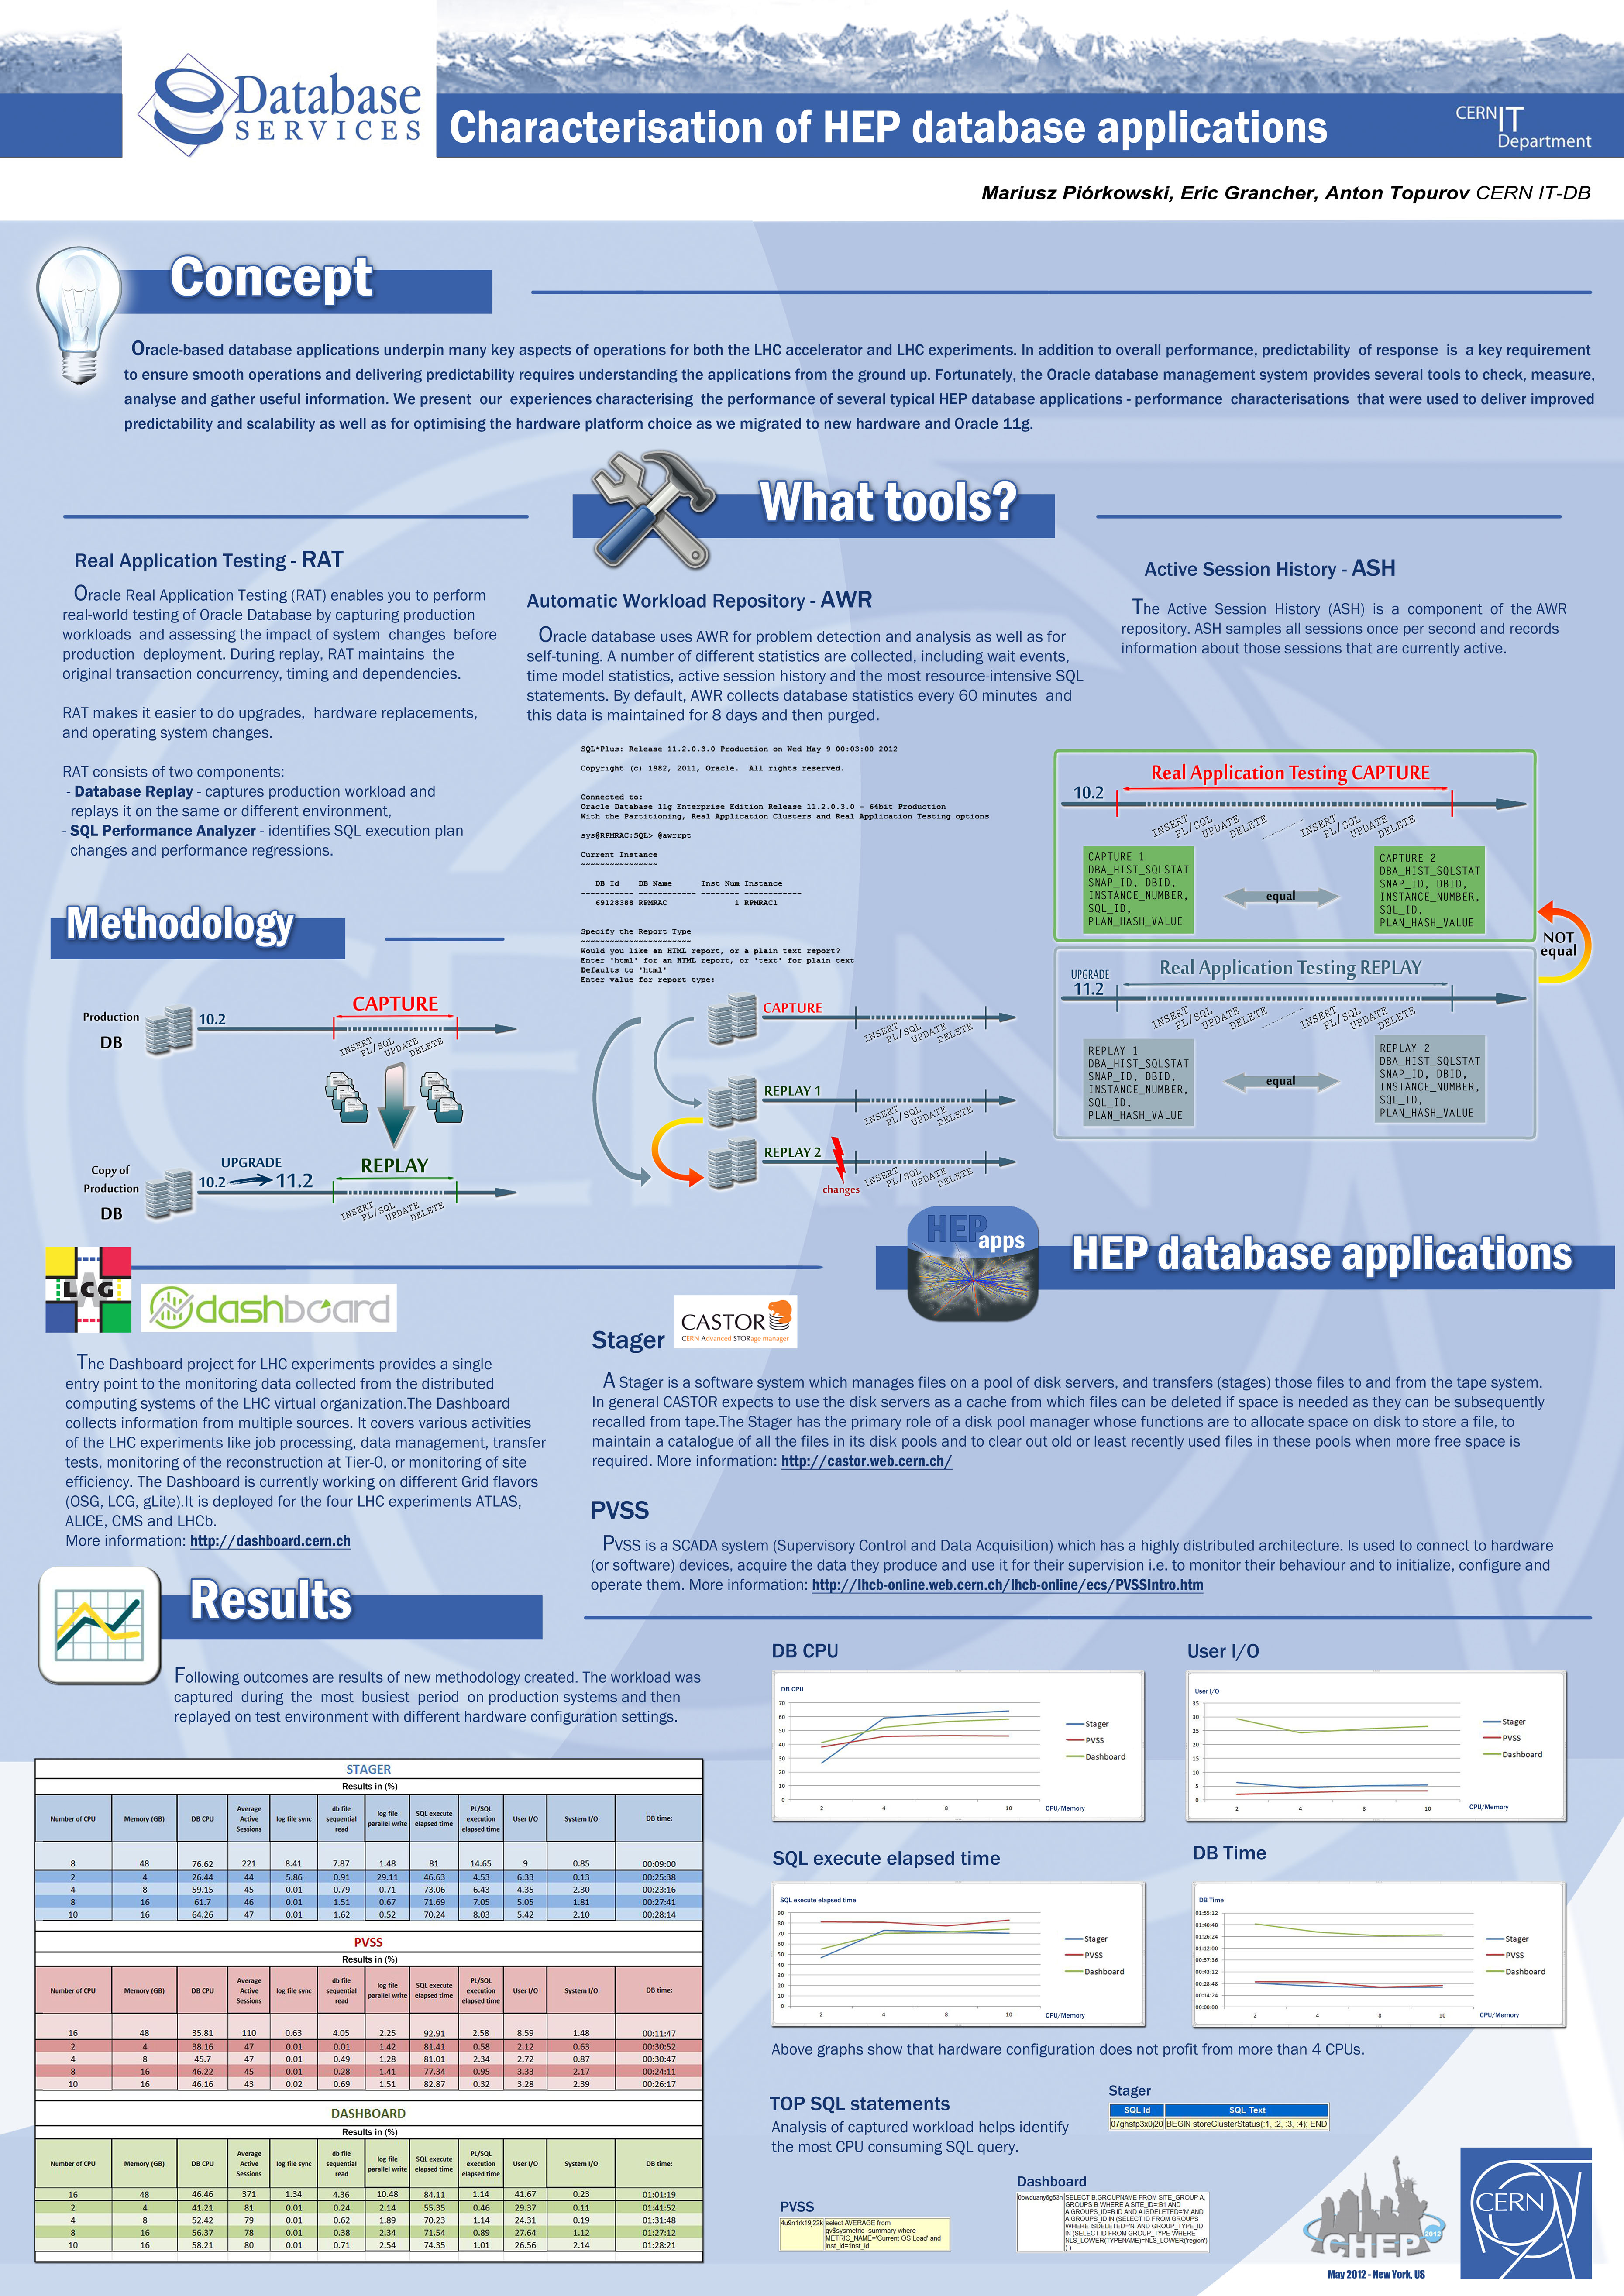 Computing in High Energy and Nuclear Physics (CHEP) 2012 (21-25 May